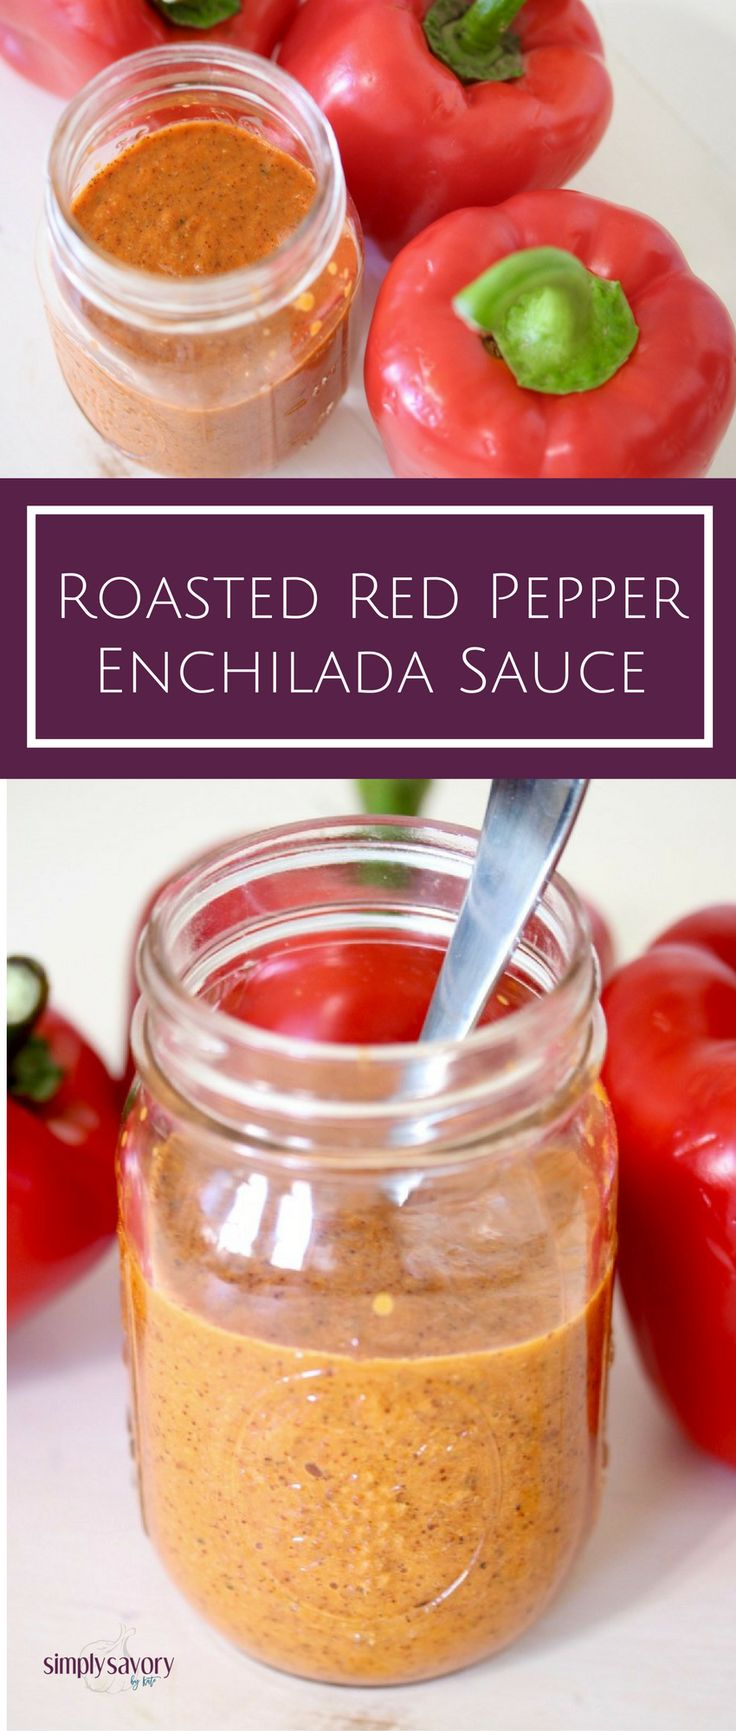 3-minute Roasted Red Pepper Enchilada Sauce makes weeknight dinner a breeze! Get the recipe at Simply Savory by Kate | www.simplysavorybykate.com